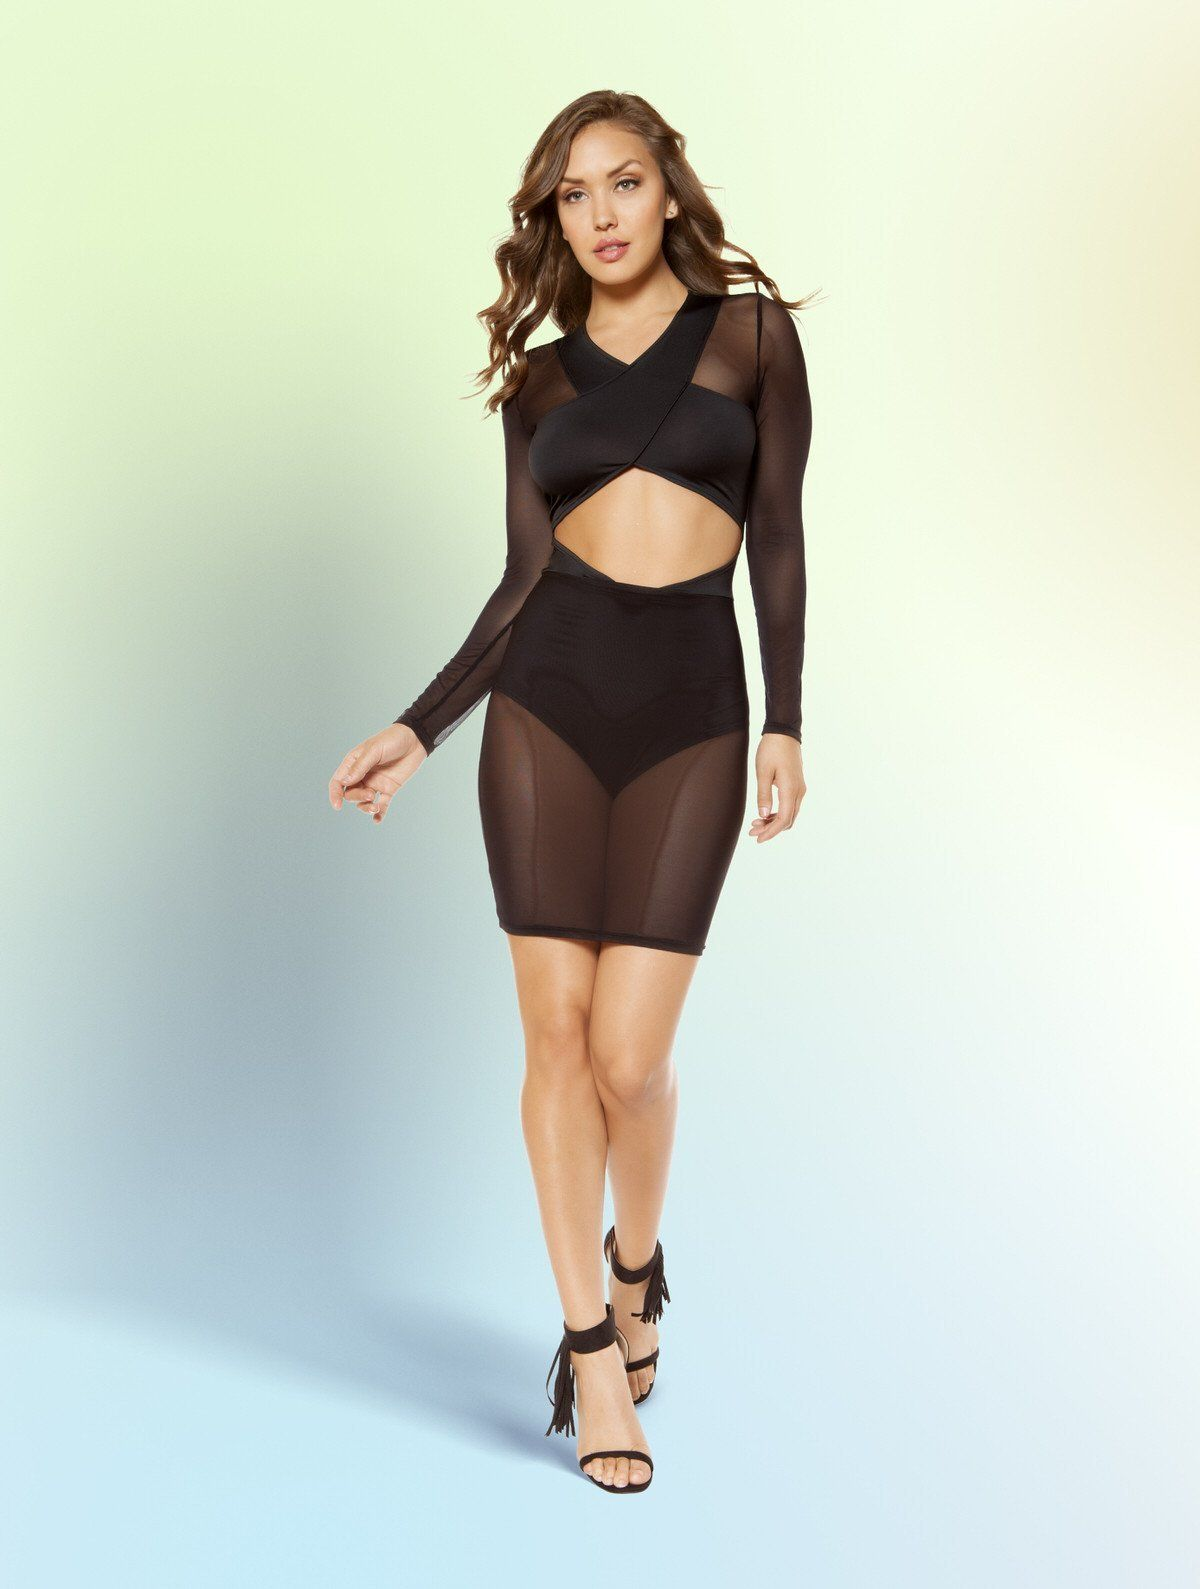 Long sleeved cutout dress with attached underlay high waisted shorts